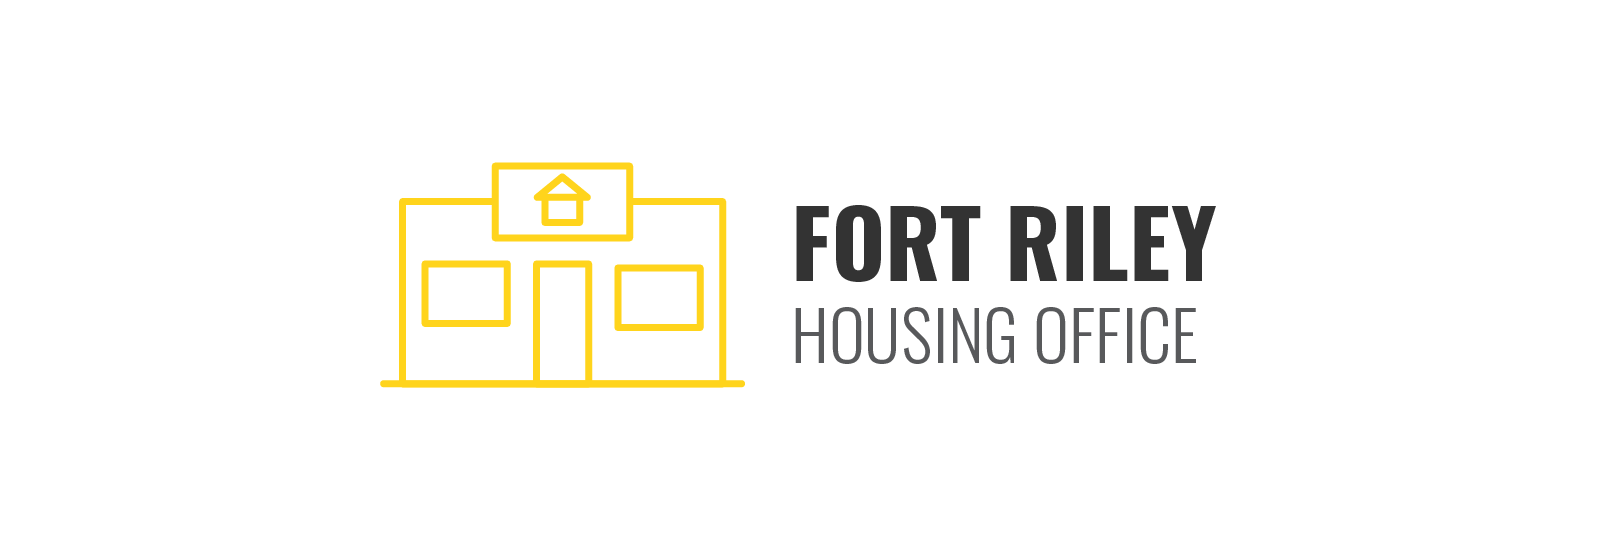 Fort Riley Housing Office